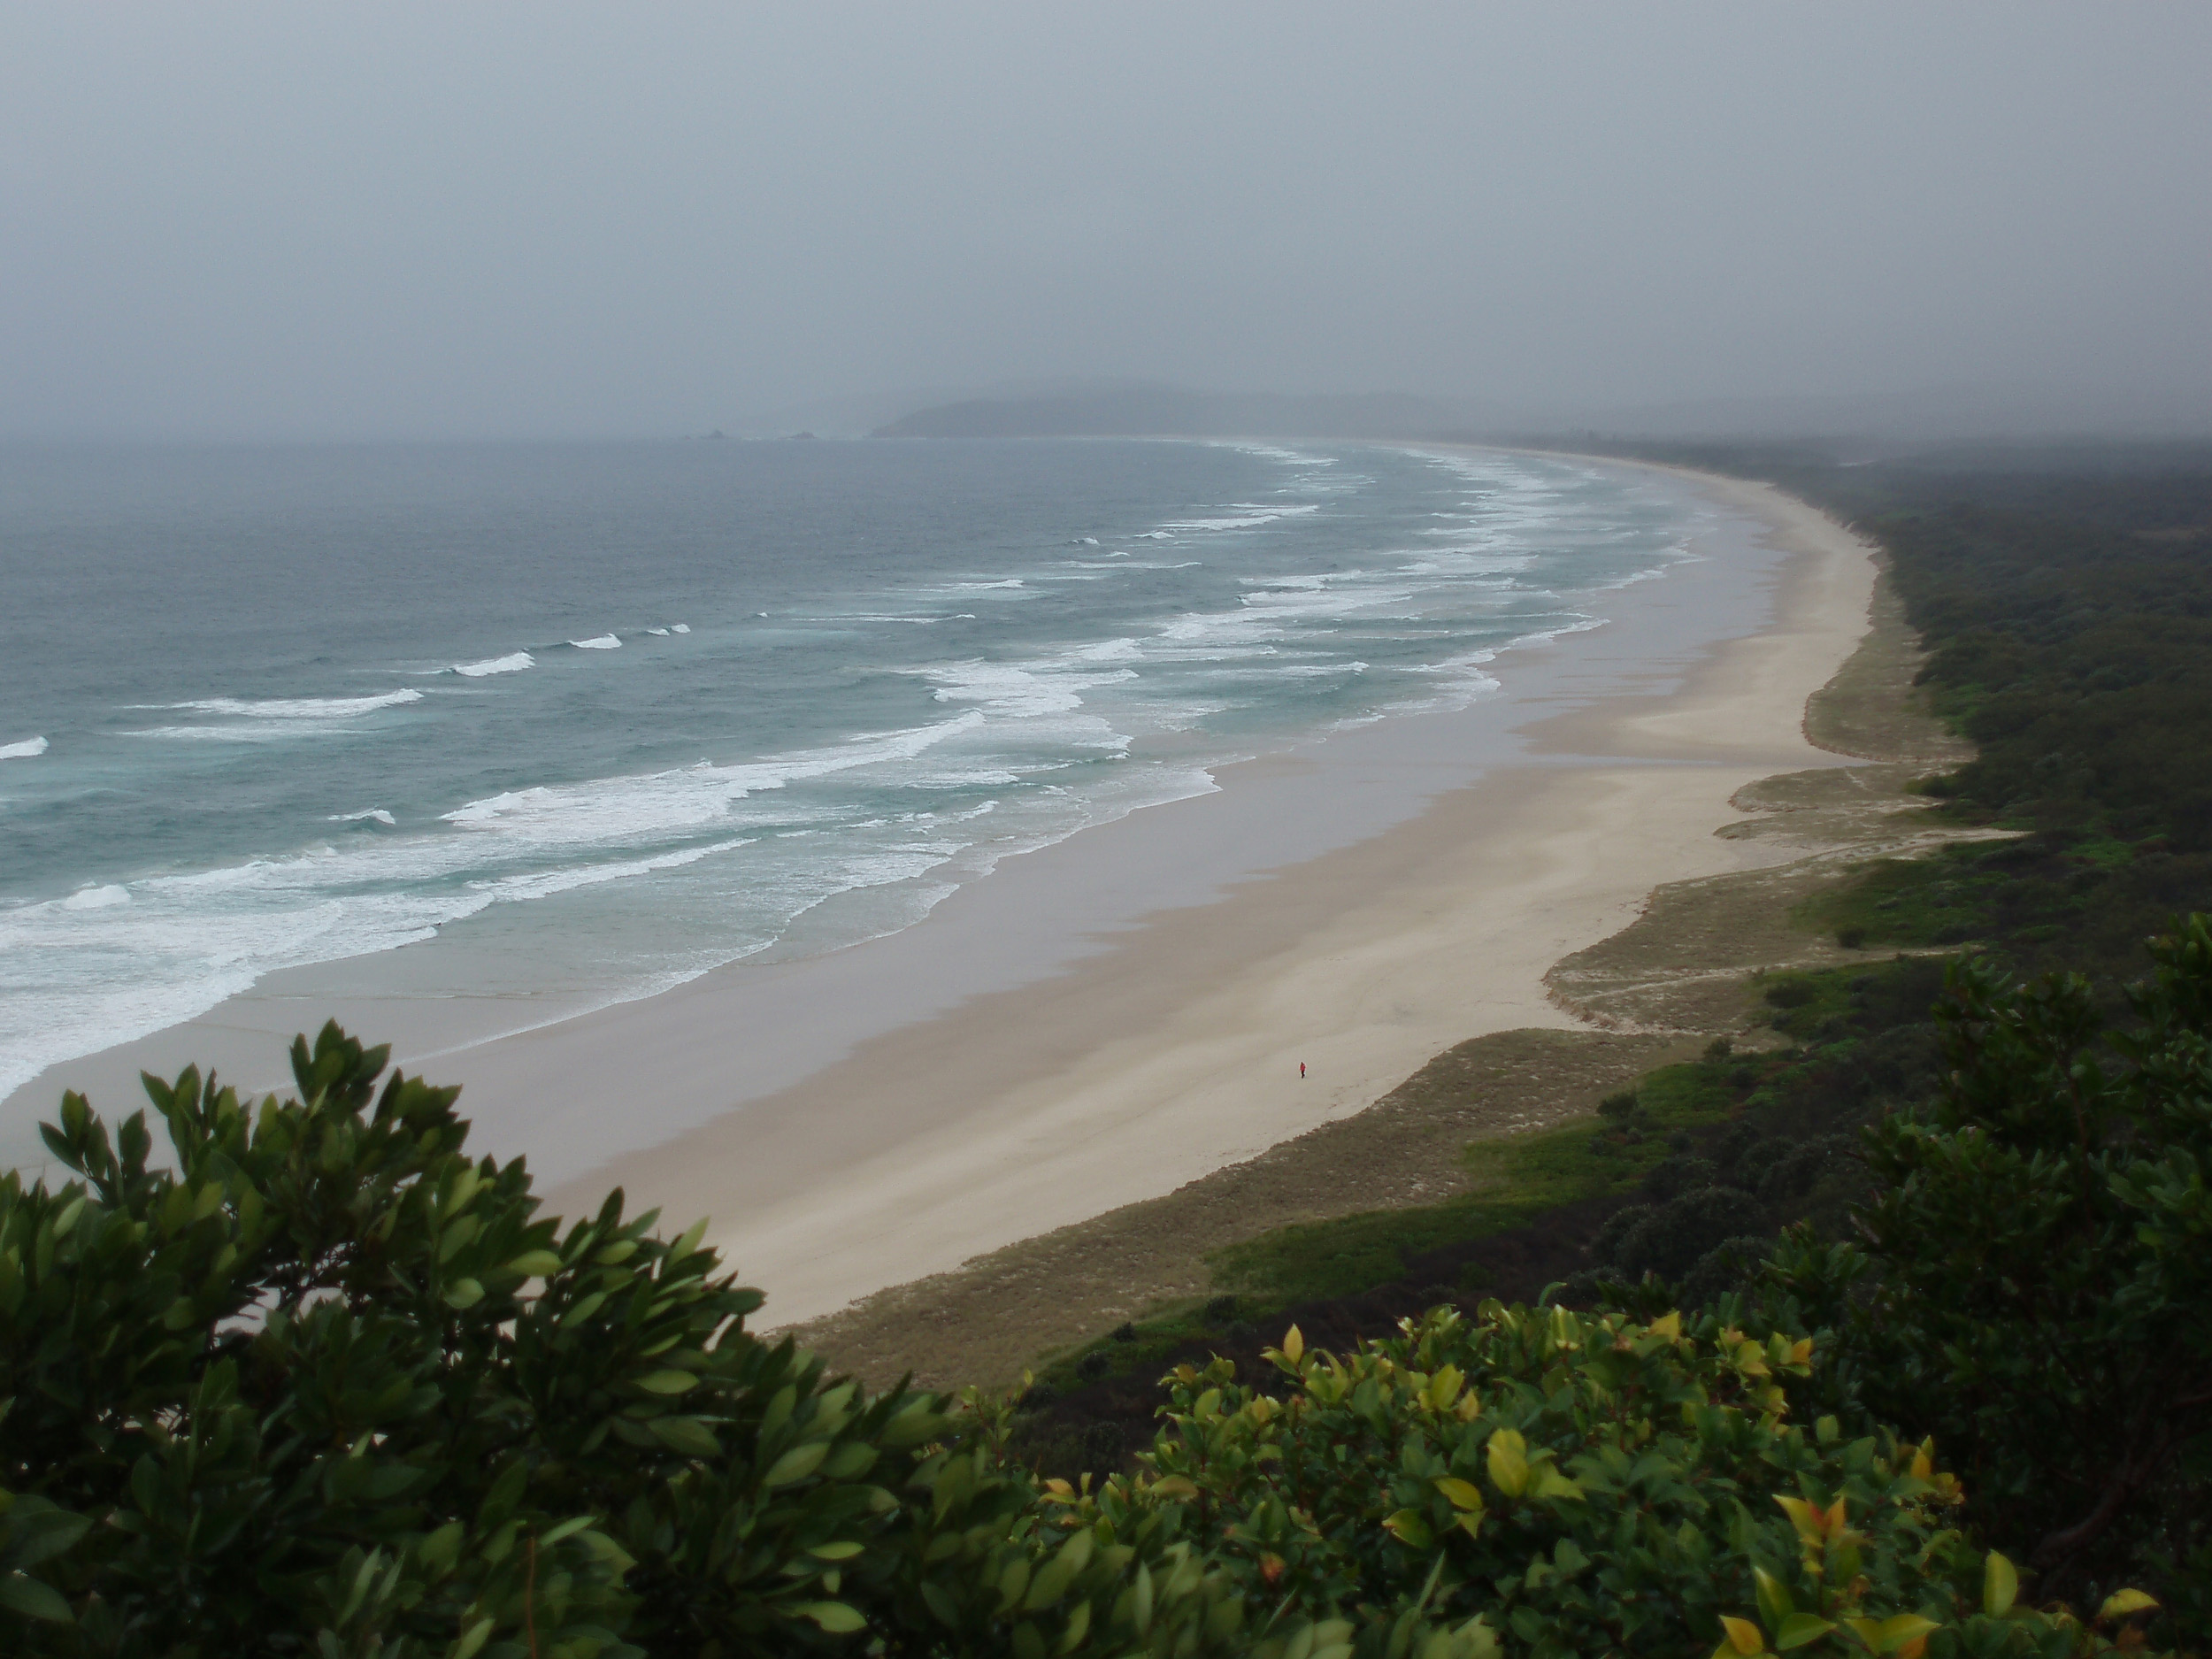 A stromy day at tallow beach, cape bryon, byron bay, NSW